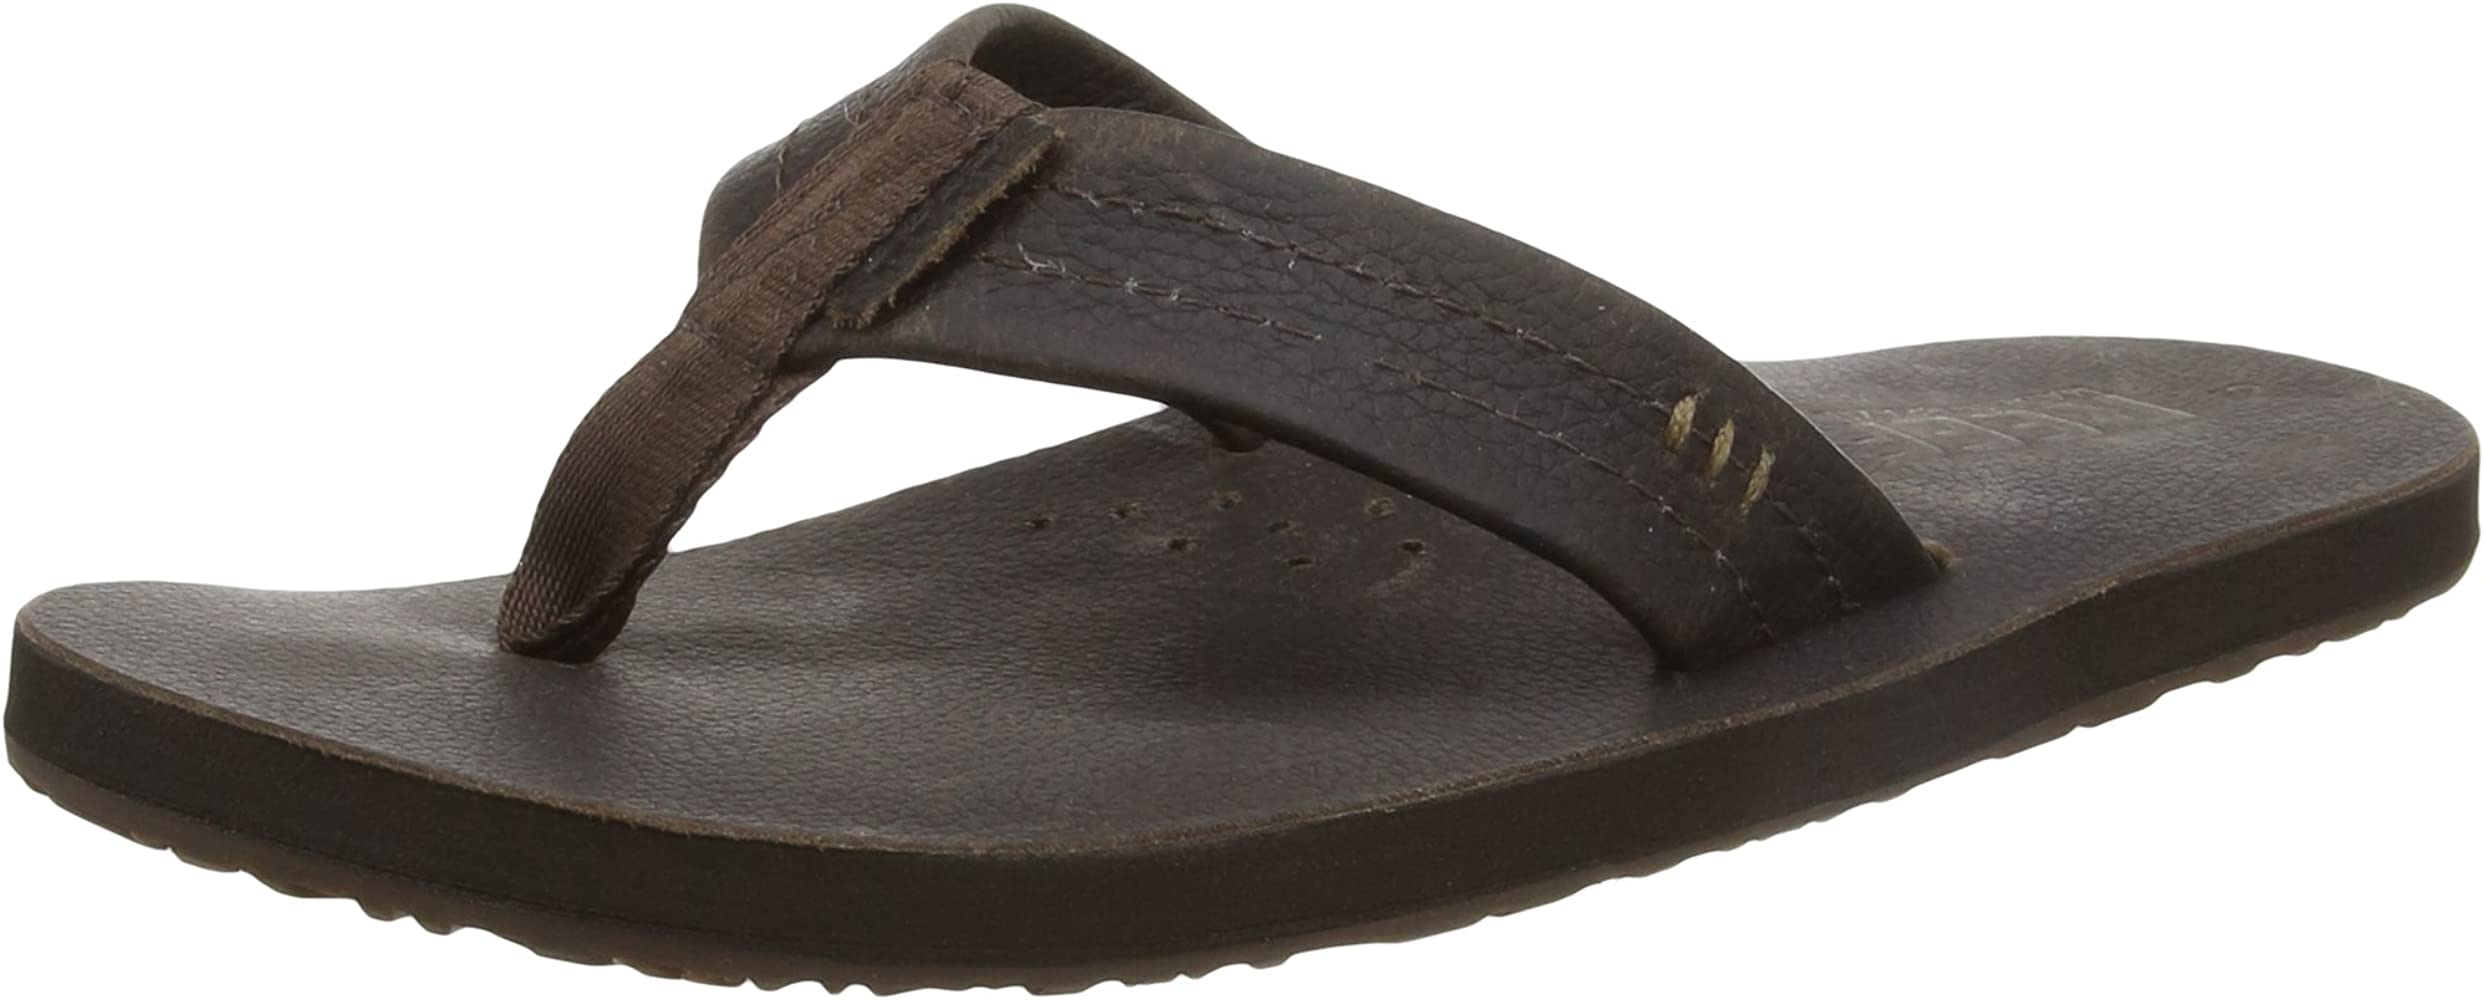 0876ed6bd4e47 Reef Men's Draftsmen Flip Flops, Brown (Chocolate), 4 UK 36 EU ...